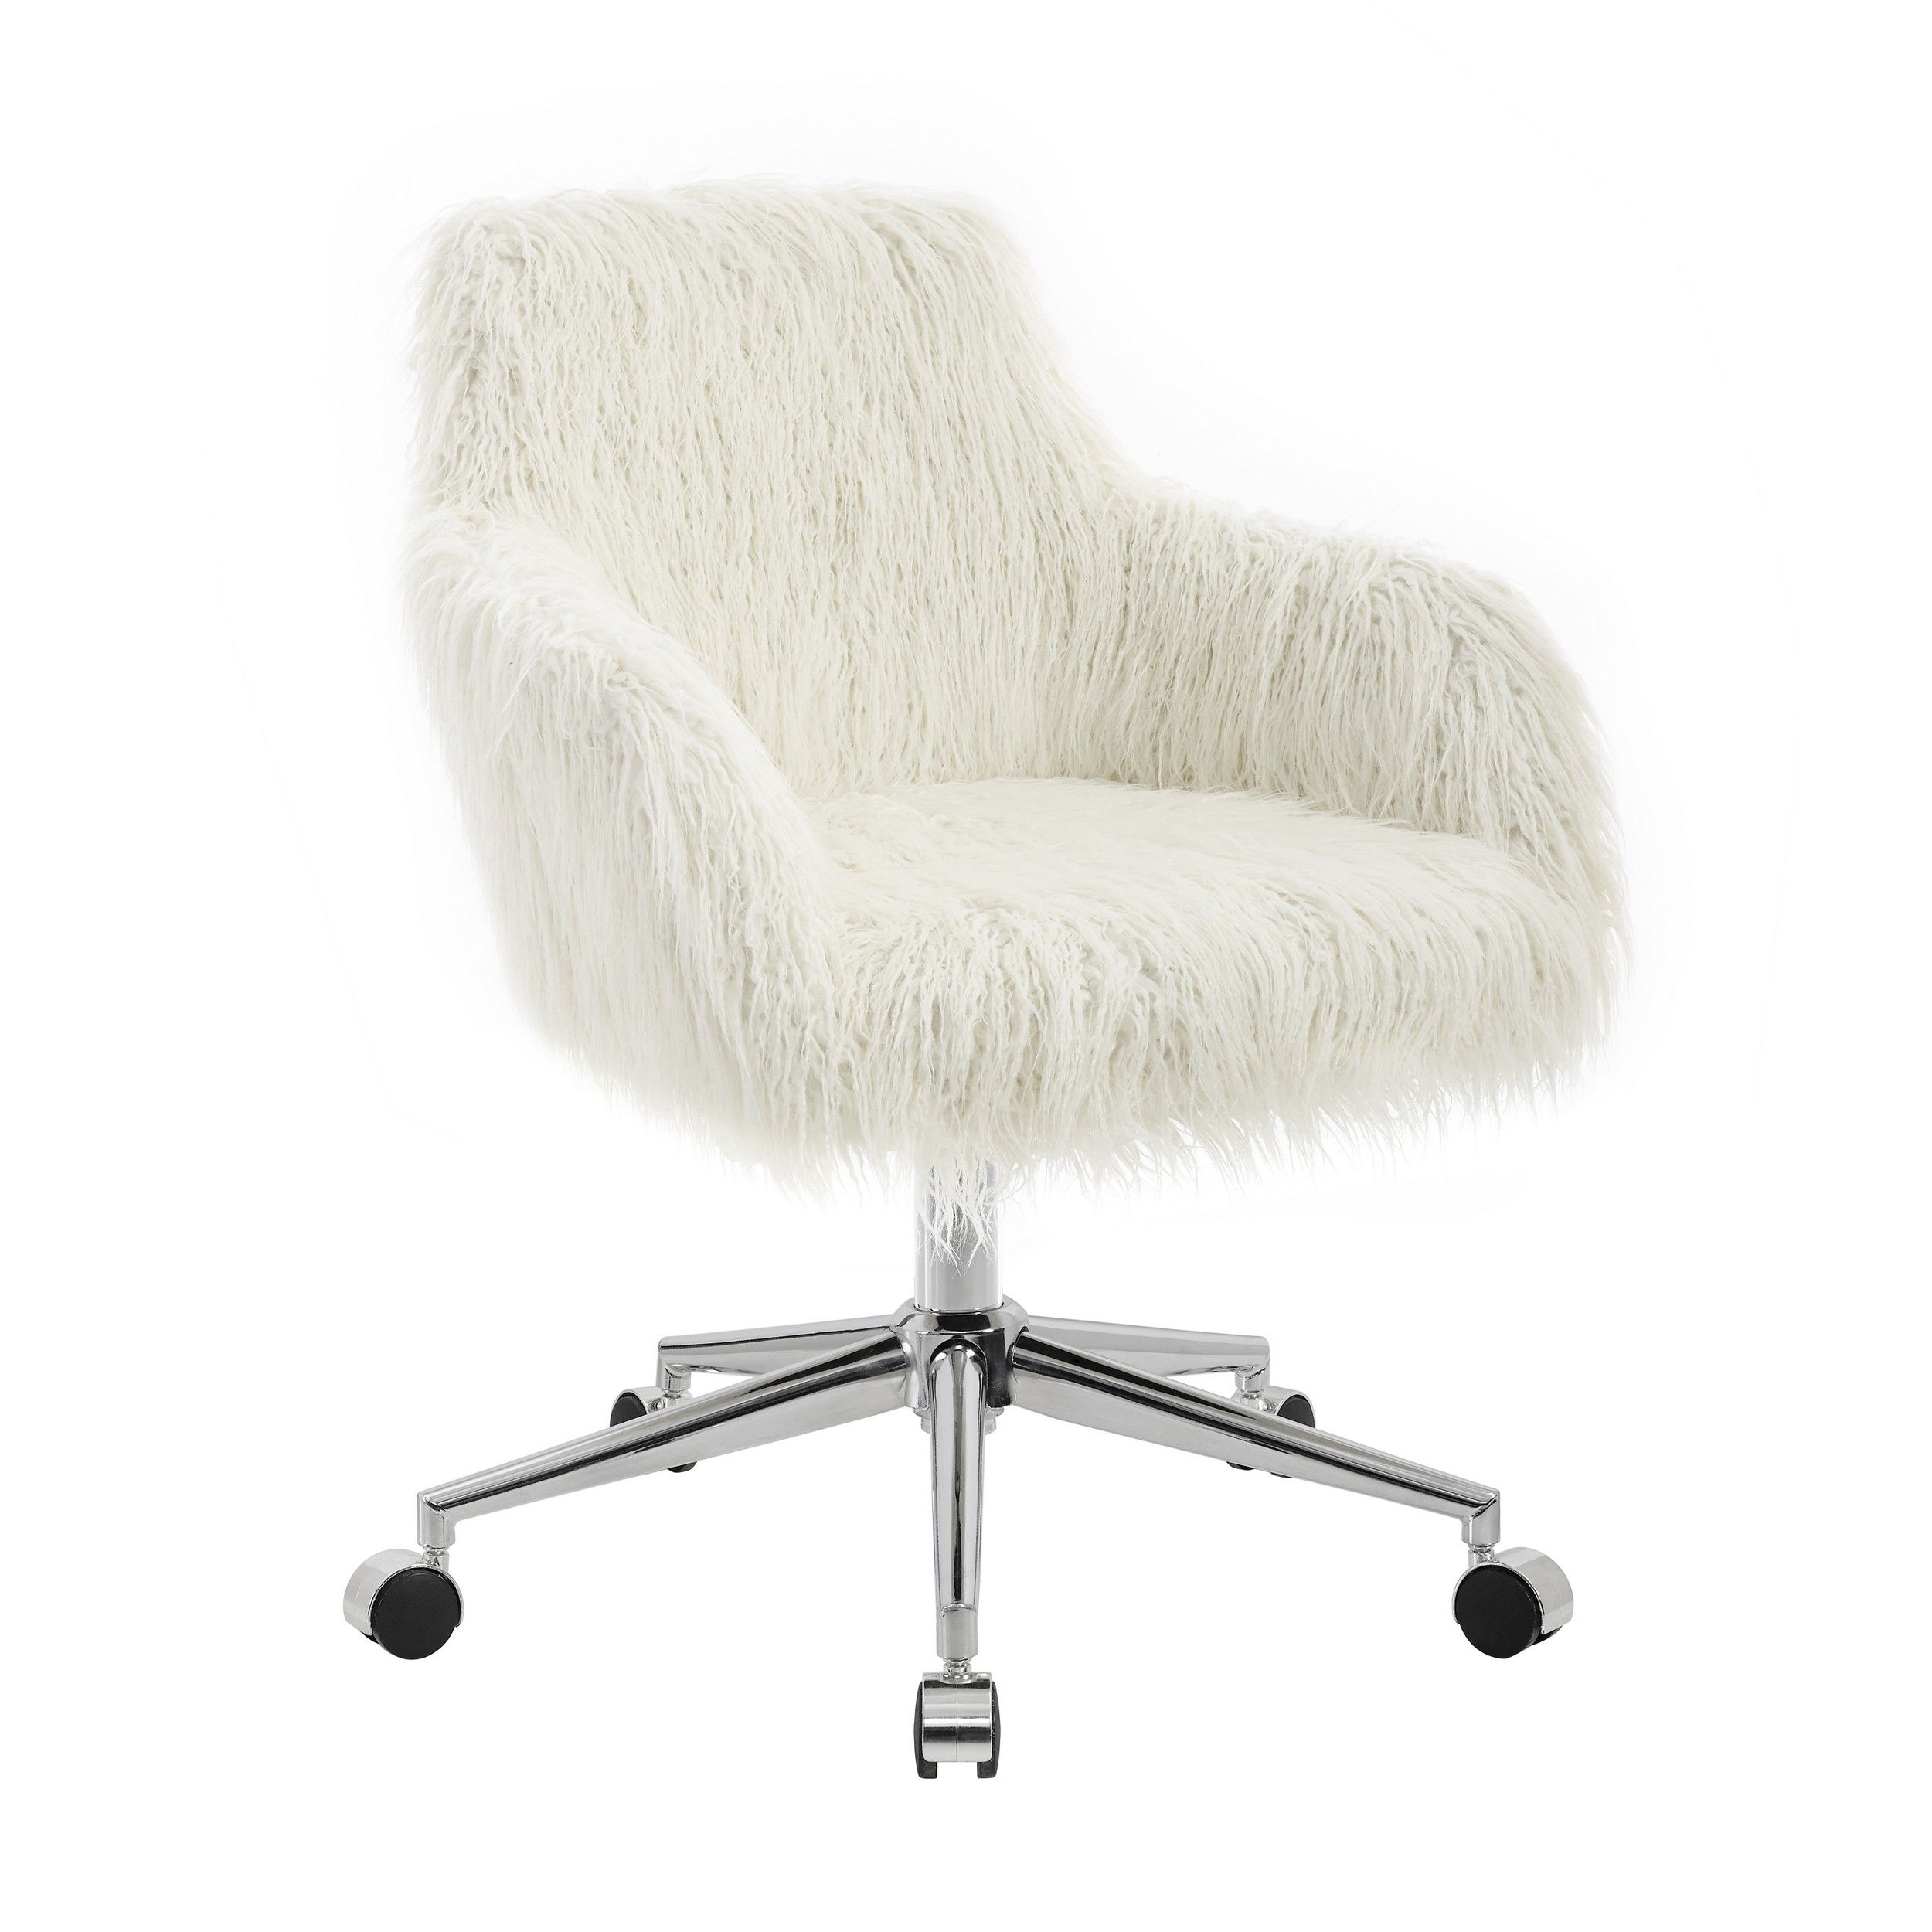 Lowest Price On Linon Home Decor Products Inc Fiona Office Chair OC084WHT01U Shop Today